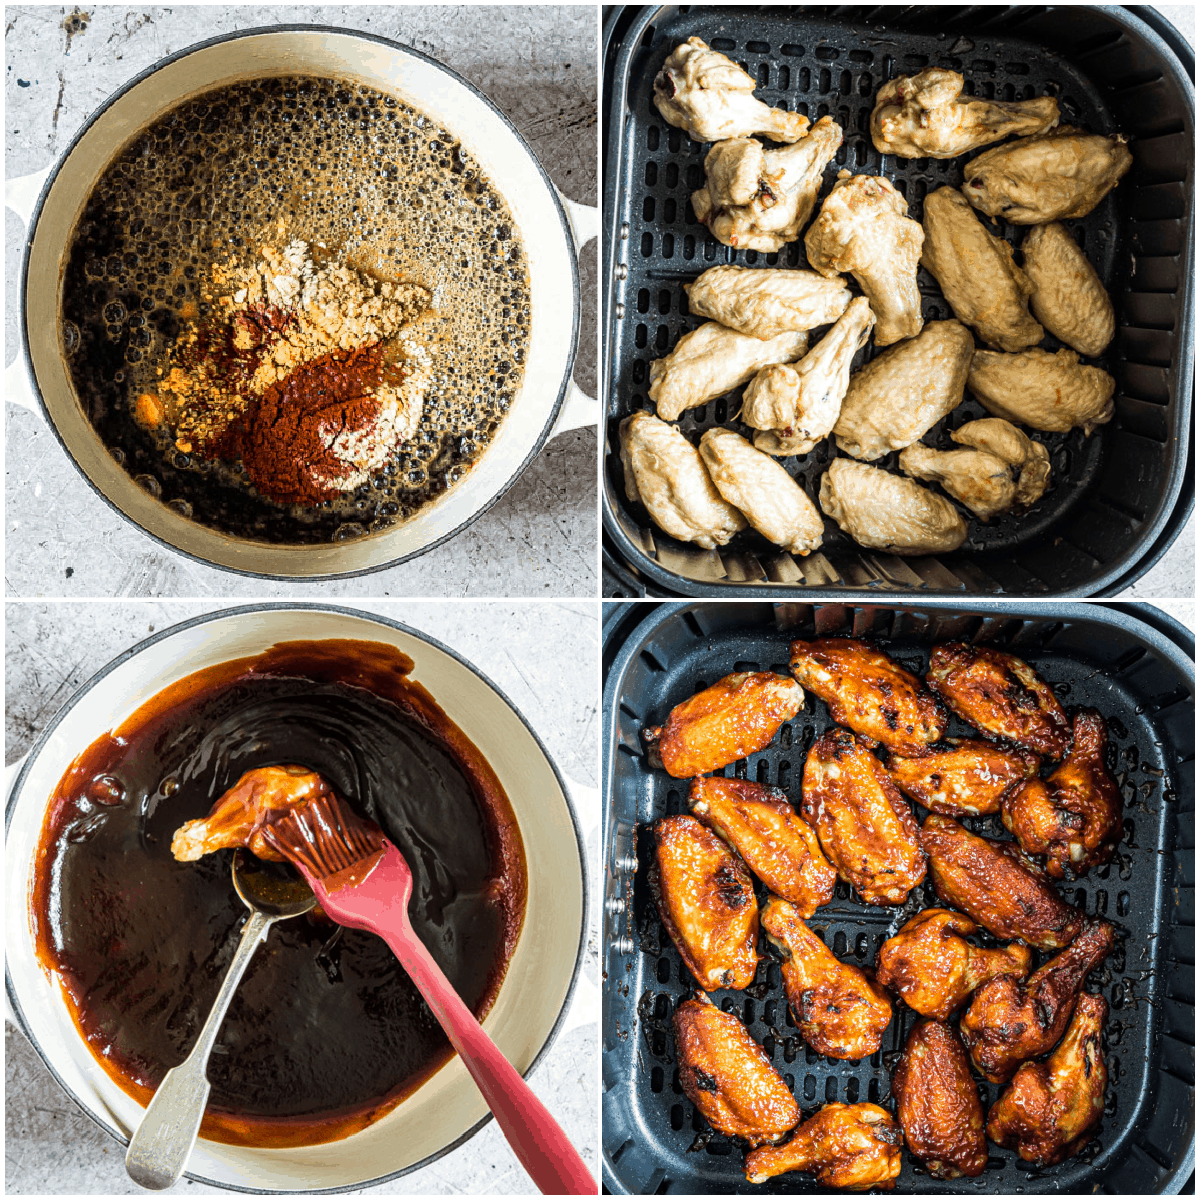 image collage showing the steps for making air fryer chicken wings